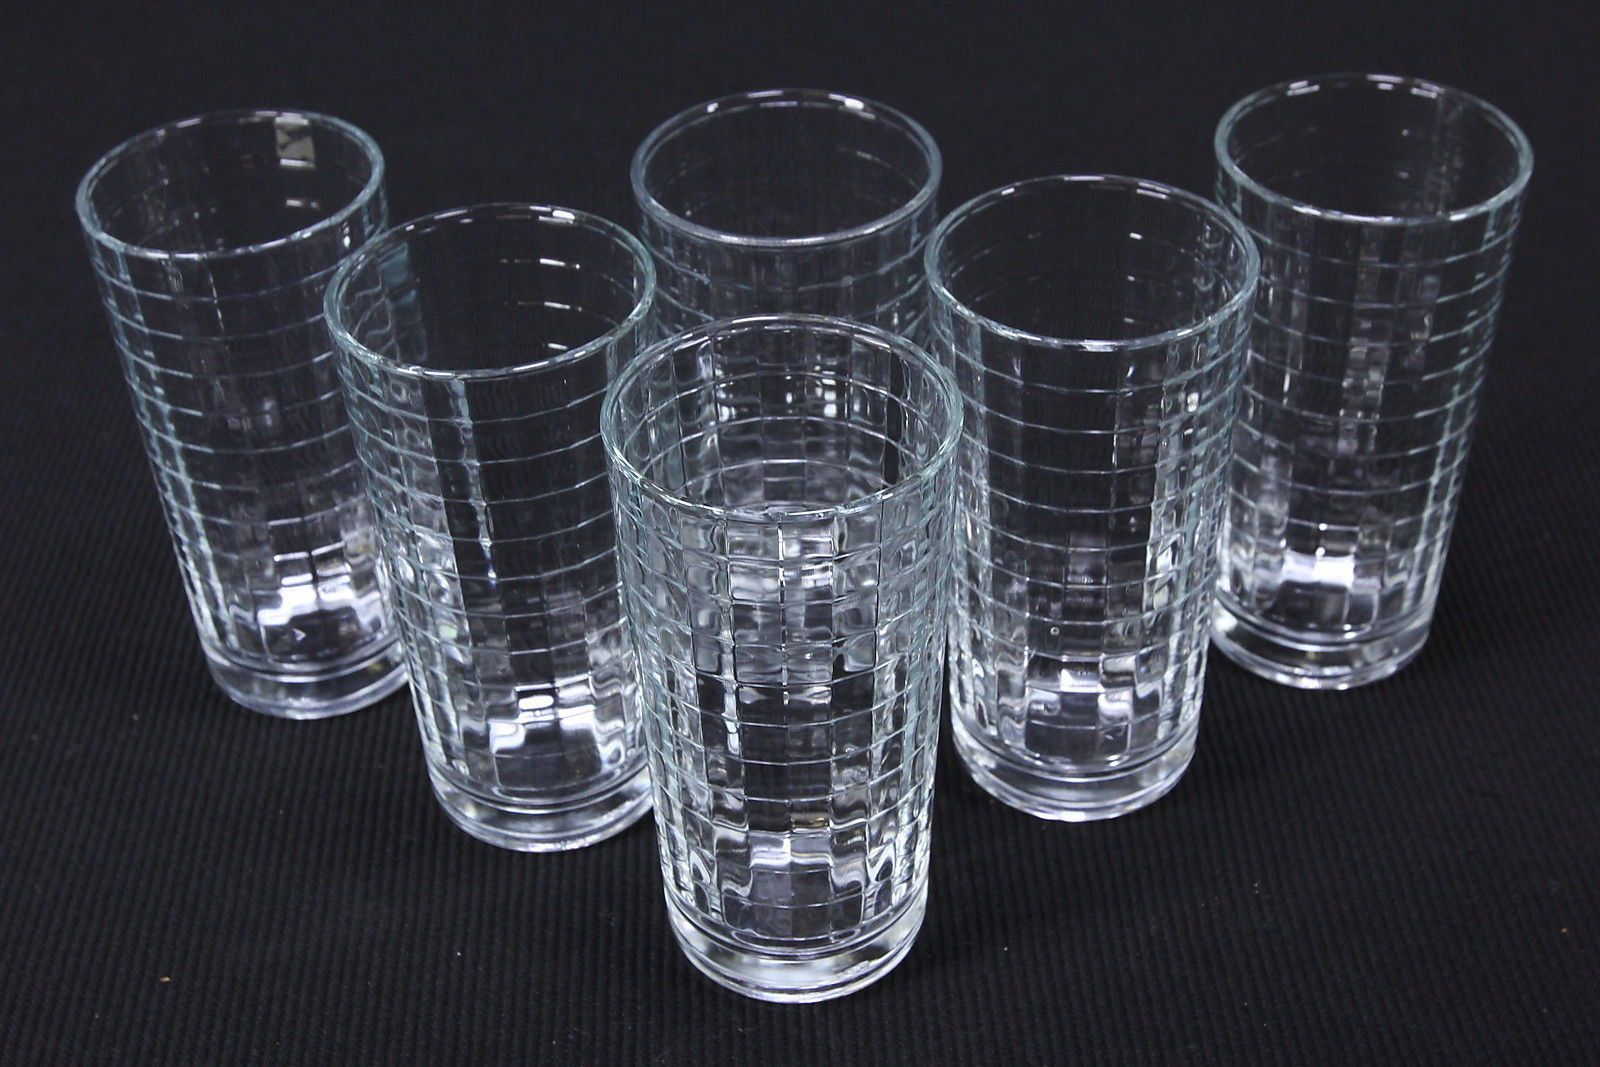 6 Clear Paneled Flat Tumblers W/ Horizontal Rings Vintage Drinking Glasses 10 Oz